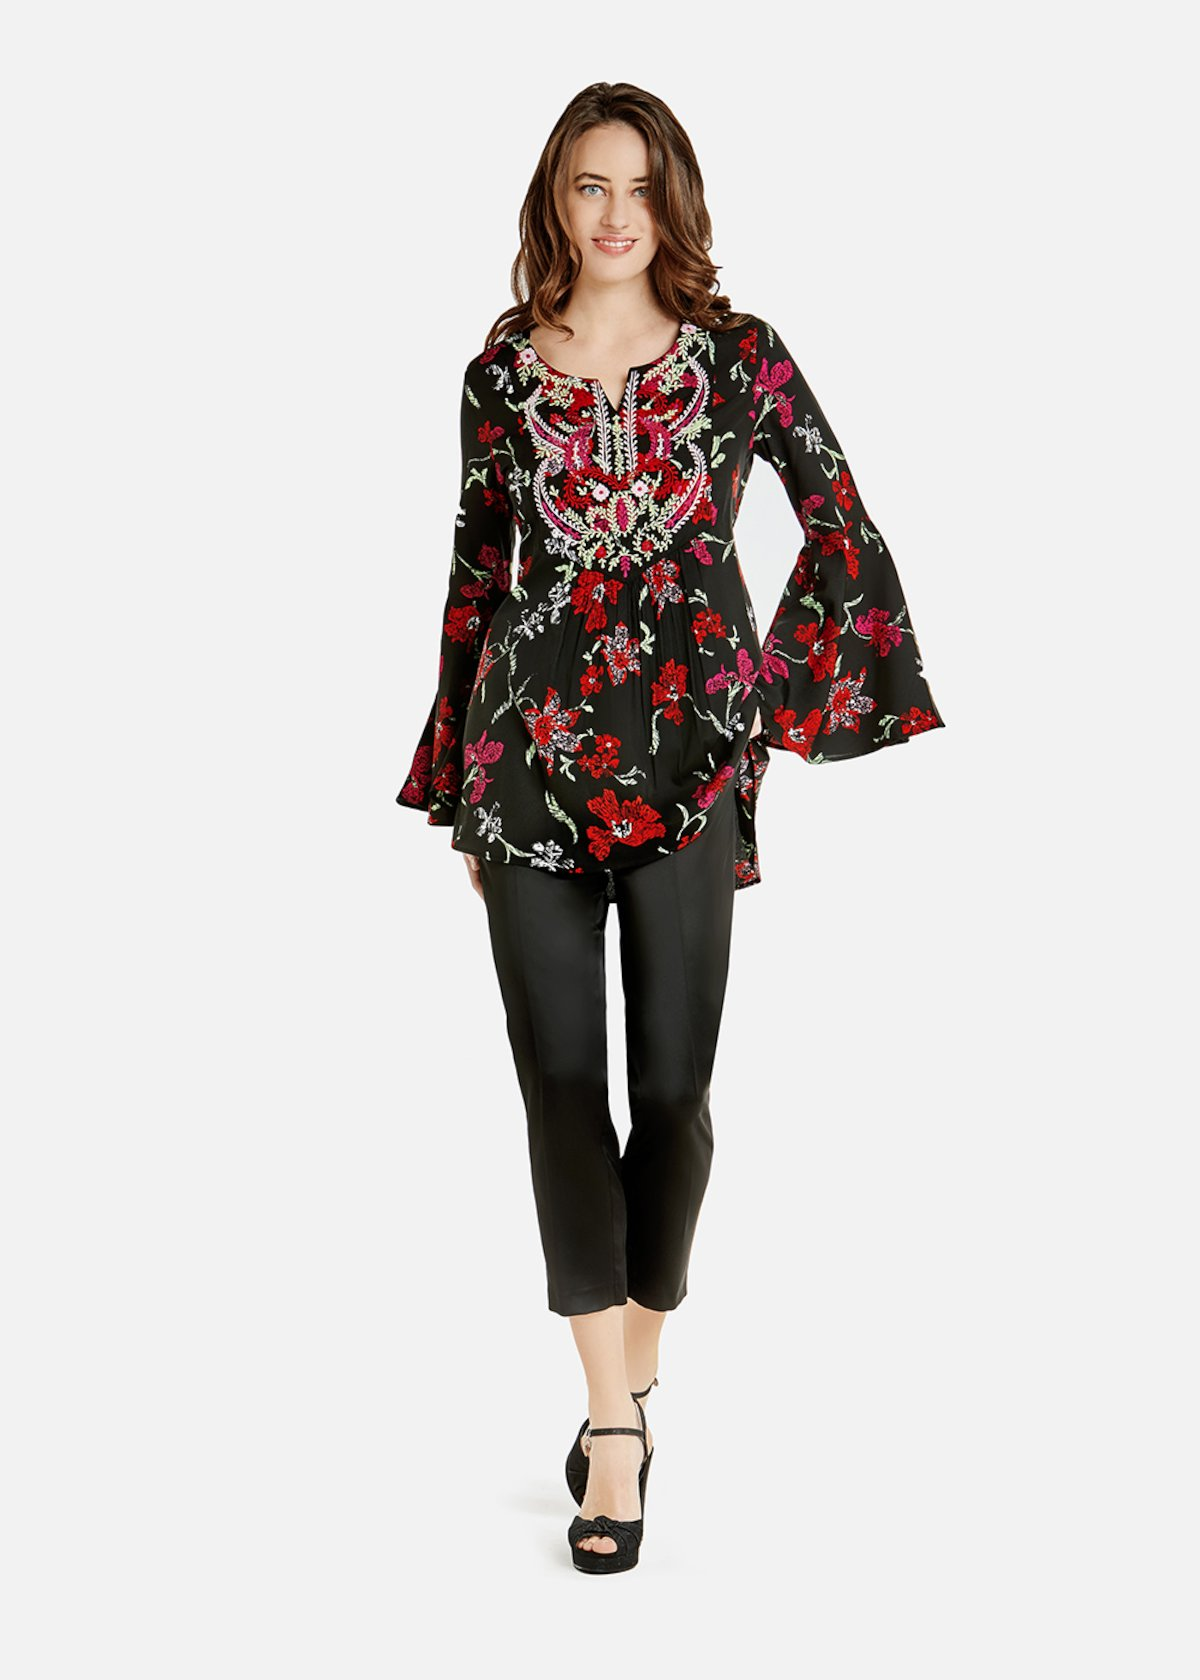 Cressie blouse with thread embroidery in tone on the neckline - Black / Rouge Fantasia